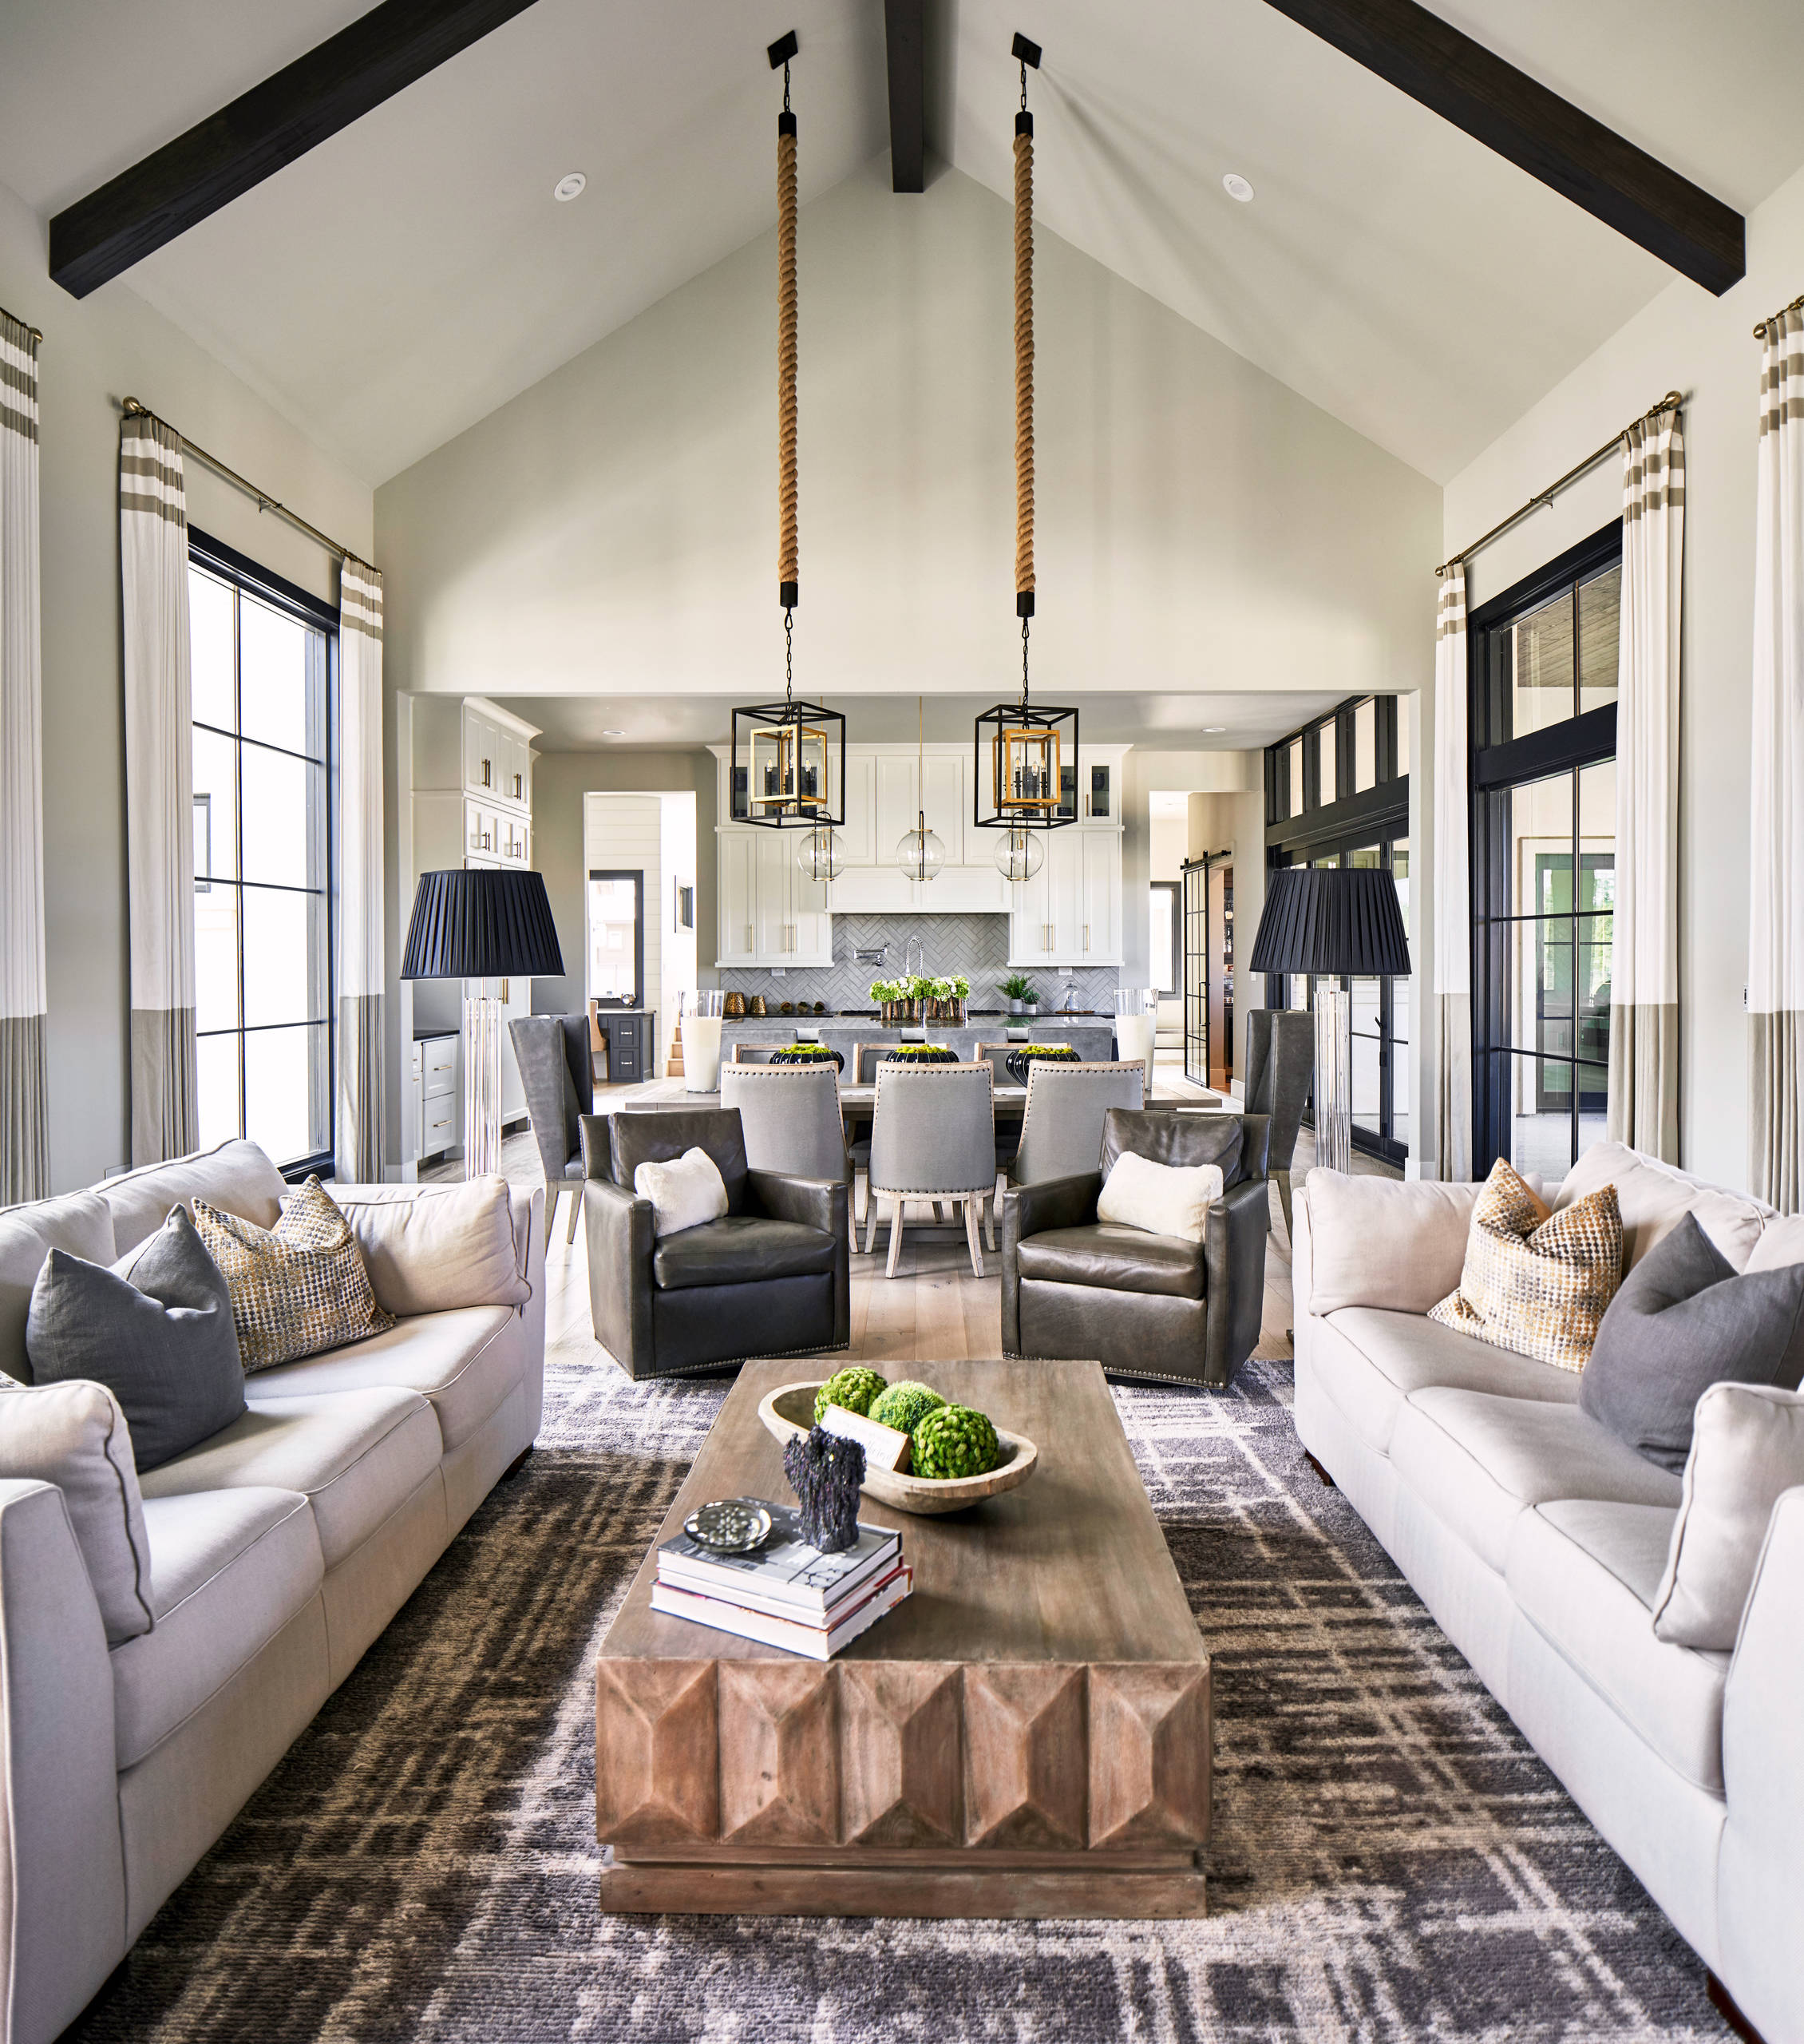 75 Beautiful Open Concept Living Room Pictures Ideas October 2020 Houzz